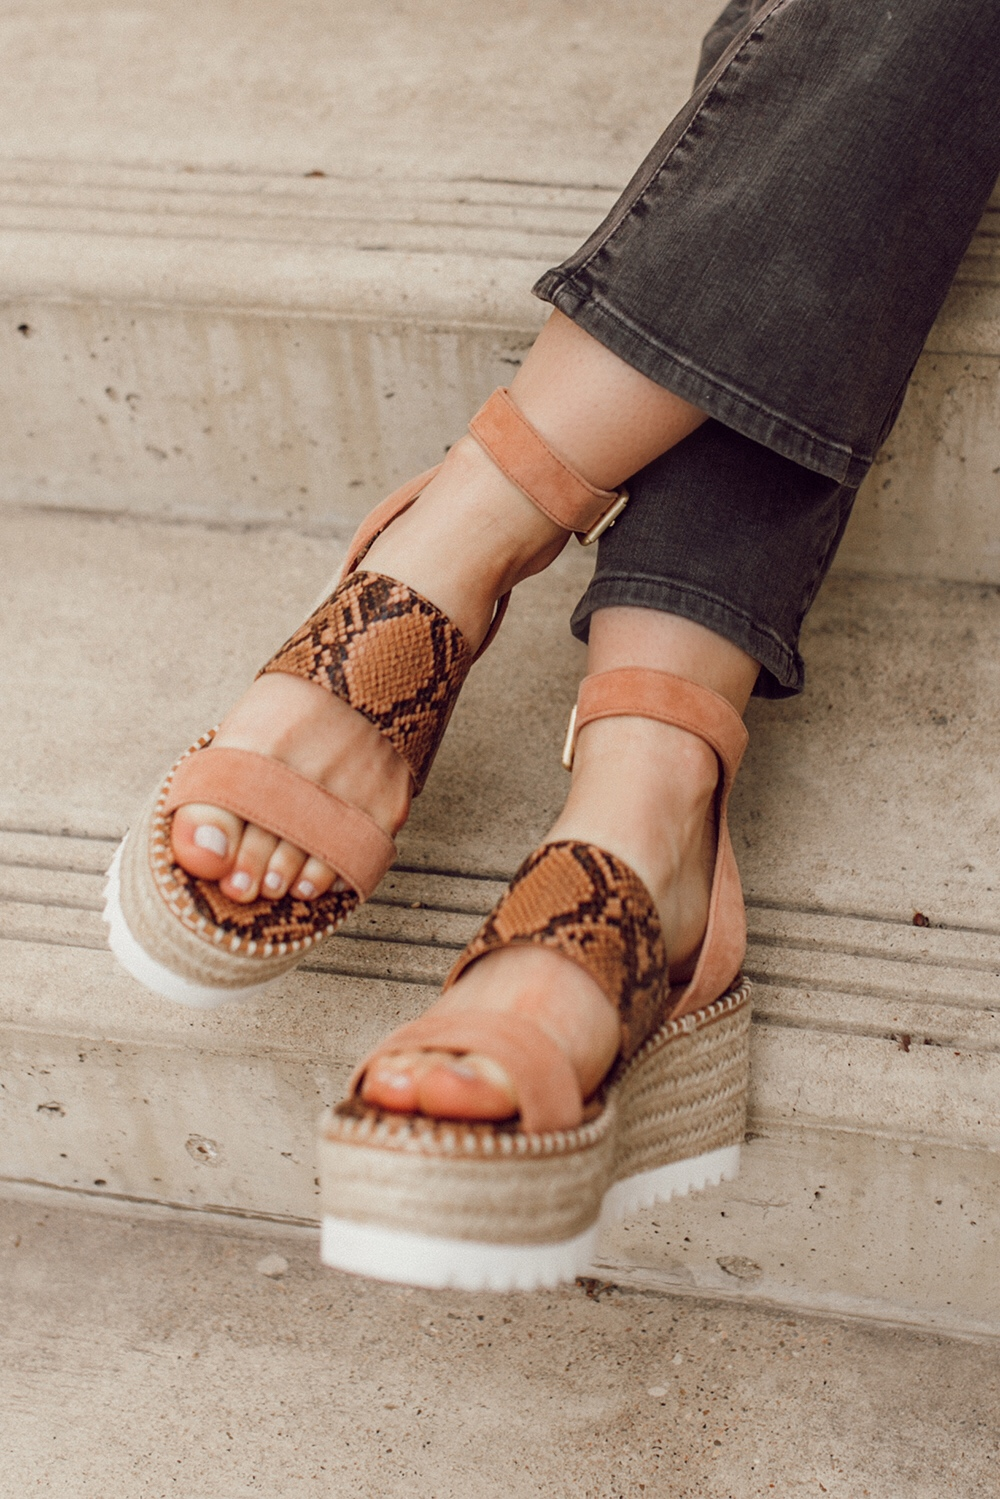 livvyland-blog-olivia-watson-austin-texas-fashion-style-blogger-crown-vintage-spring-peach-wedges-shoes-affordable-dsw-3